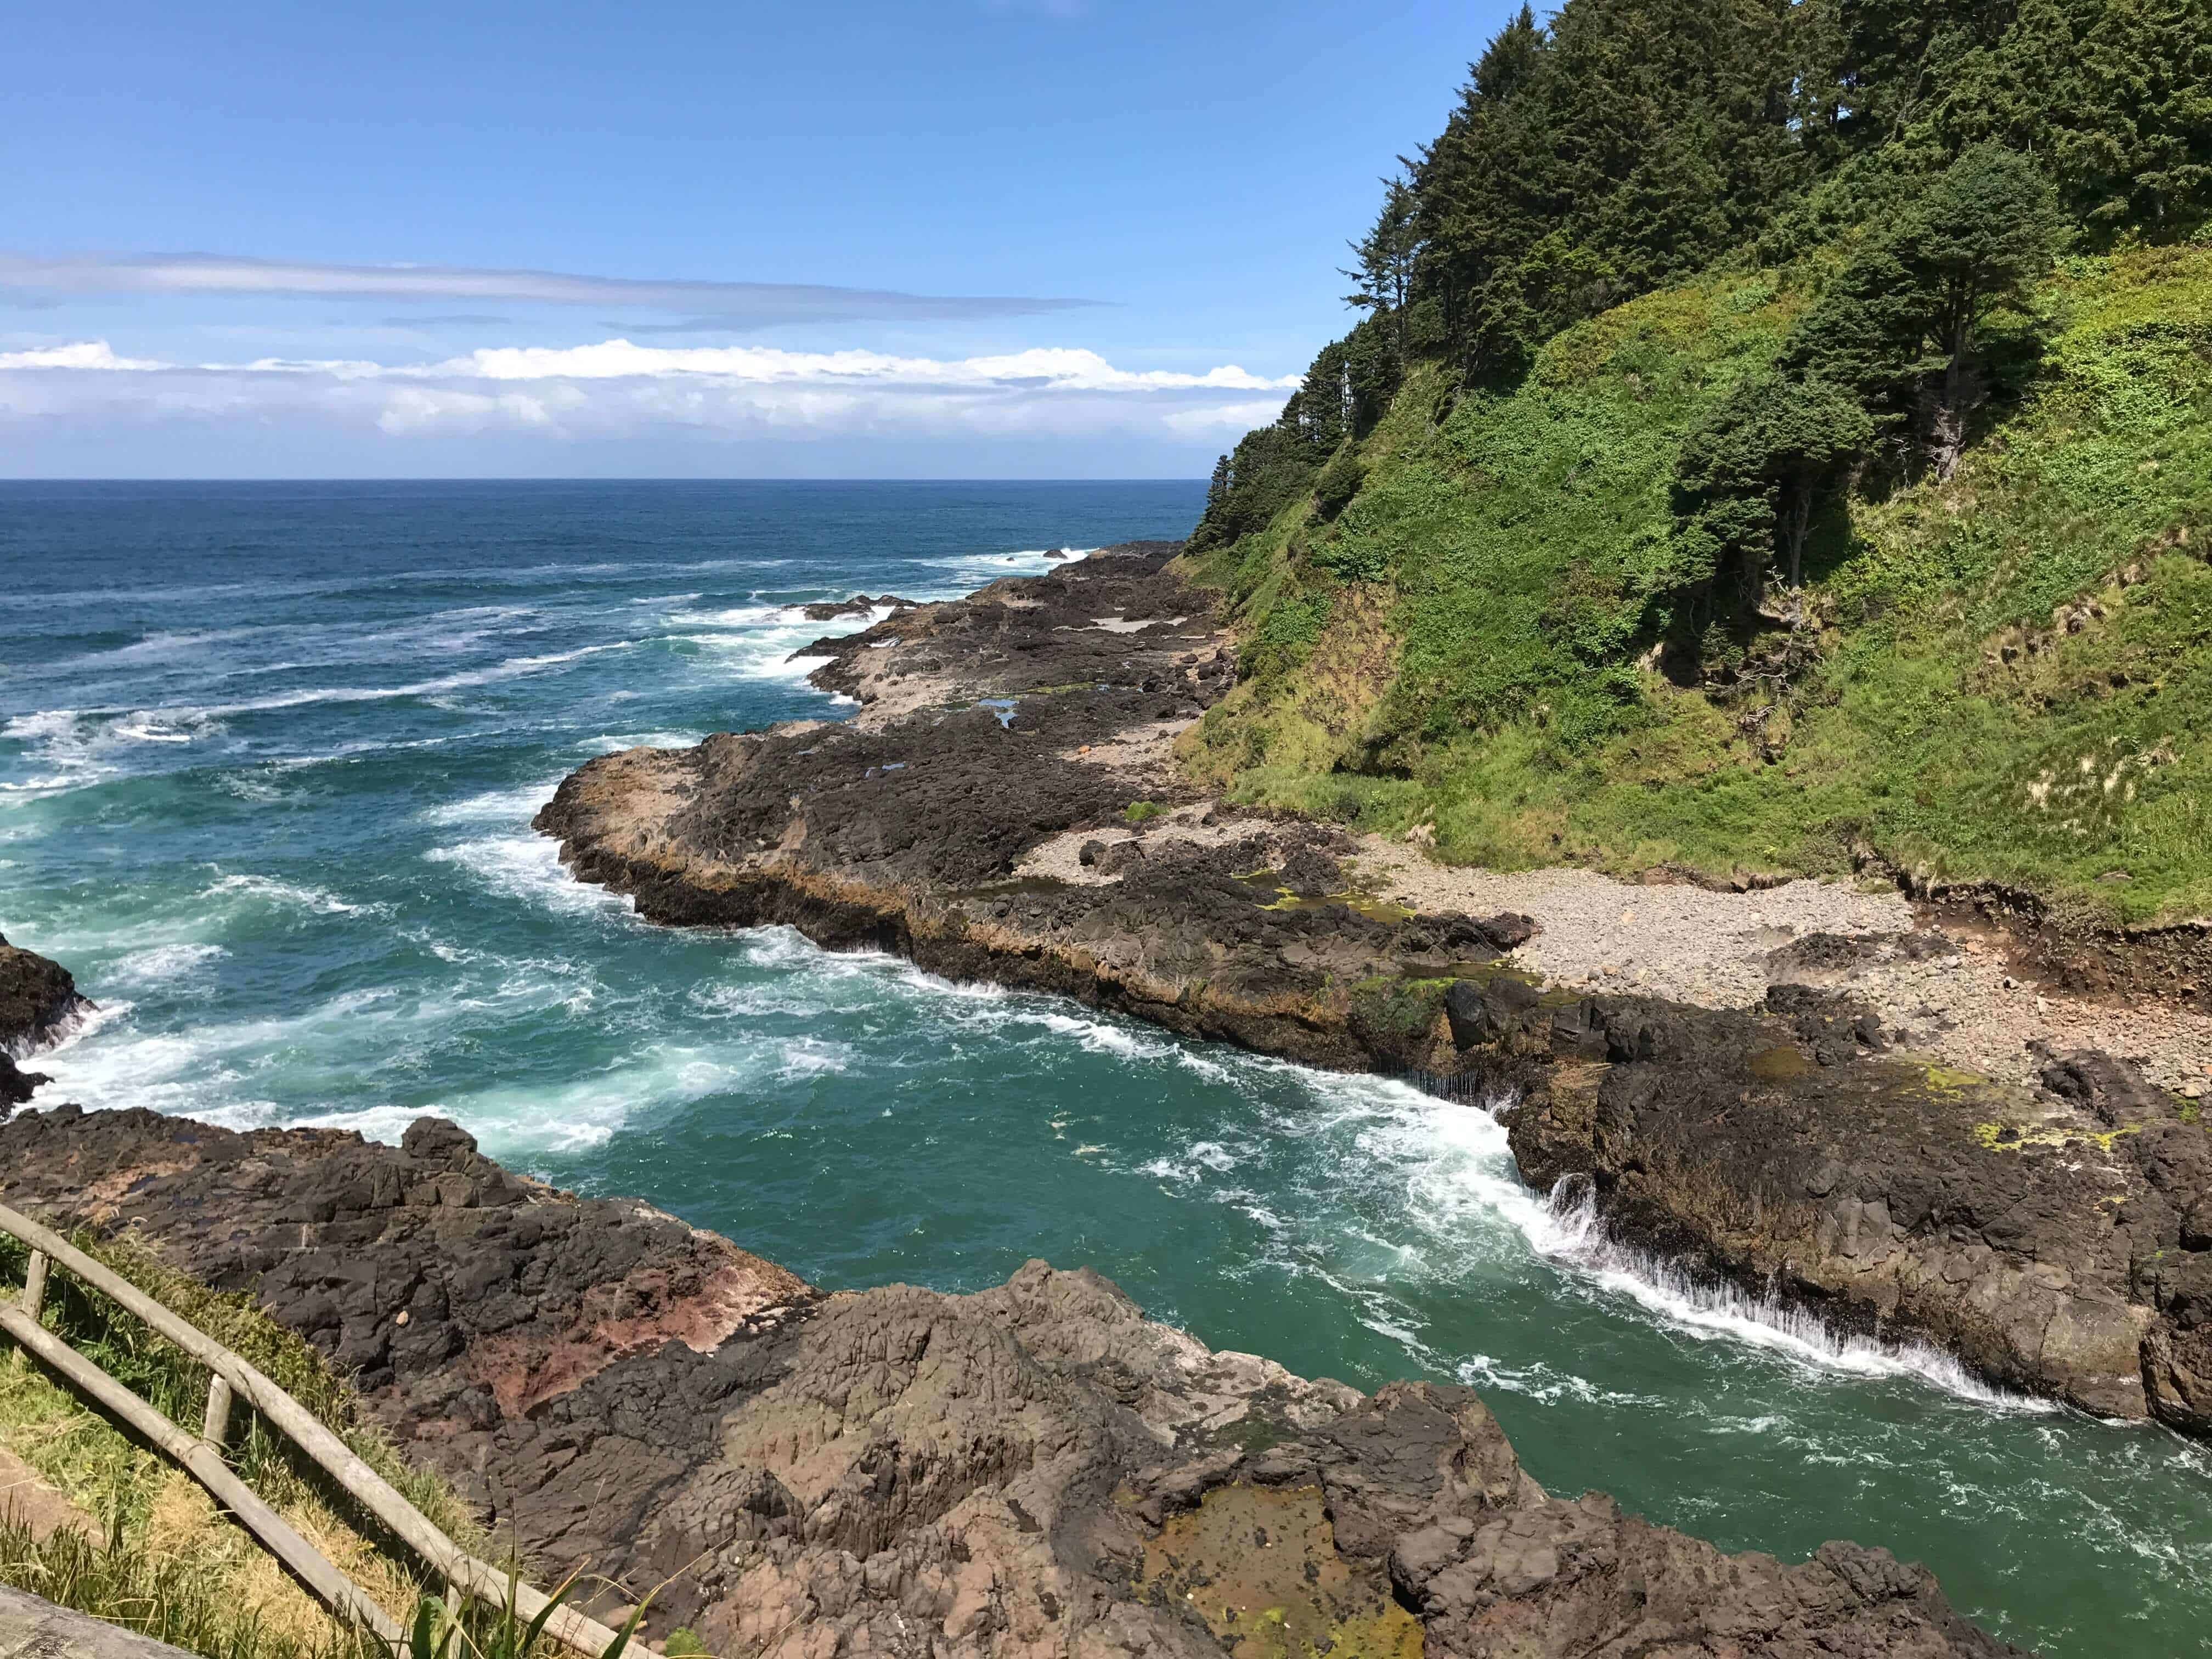 Our incredible view in Yachats, OR - unfiltered!